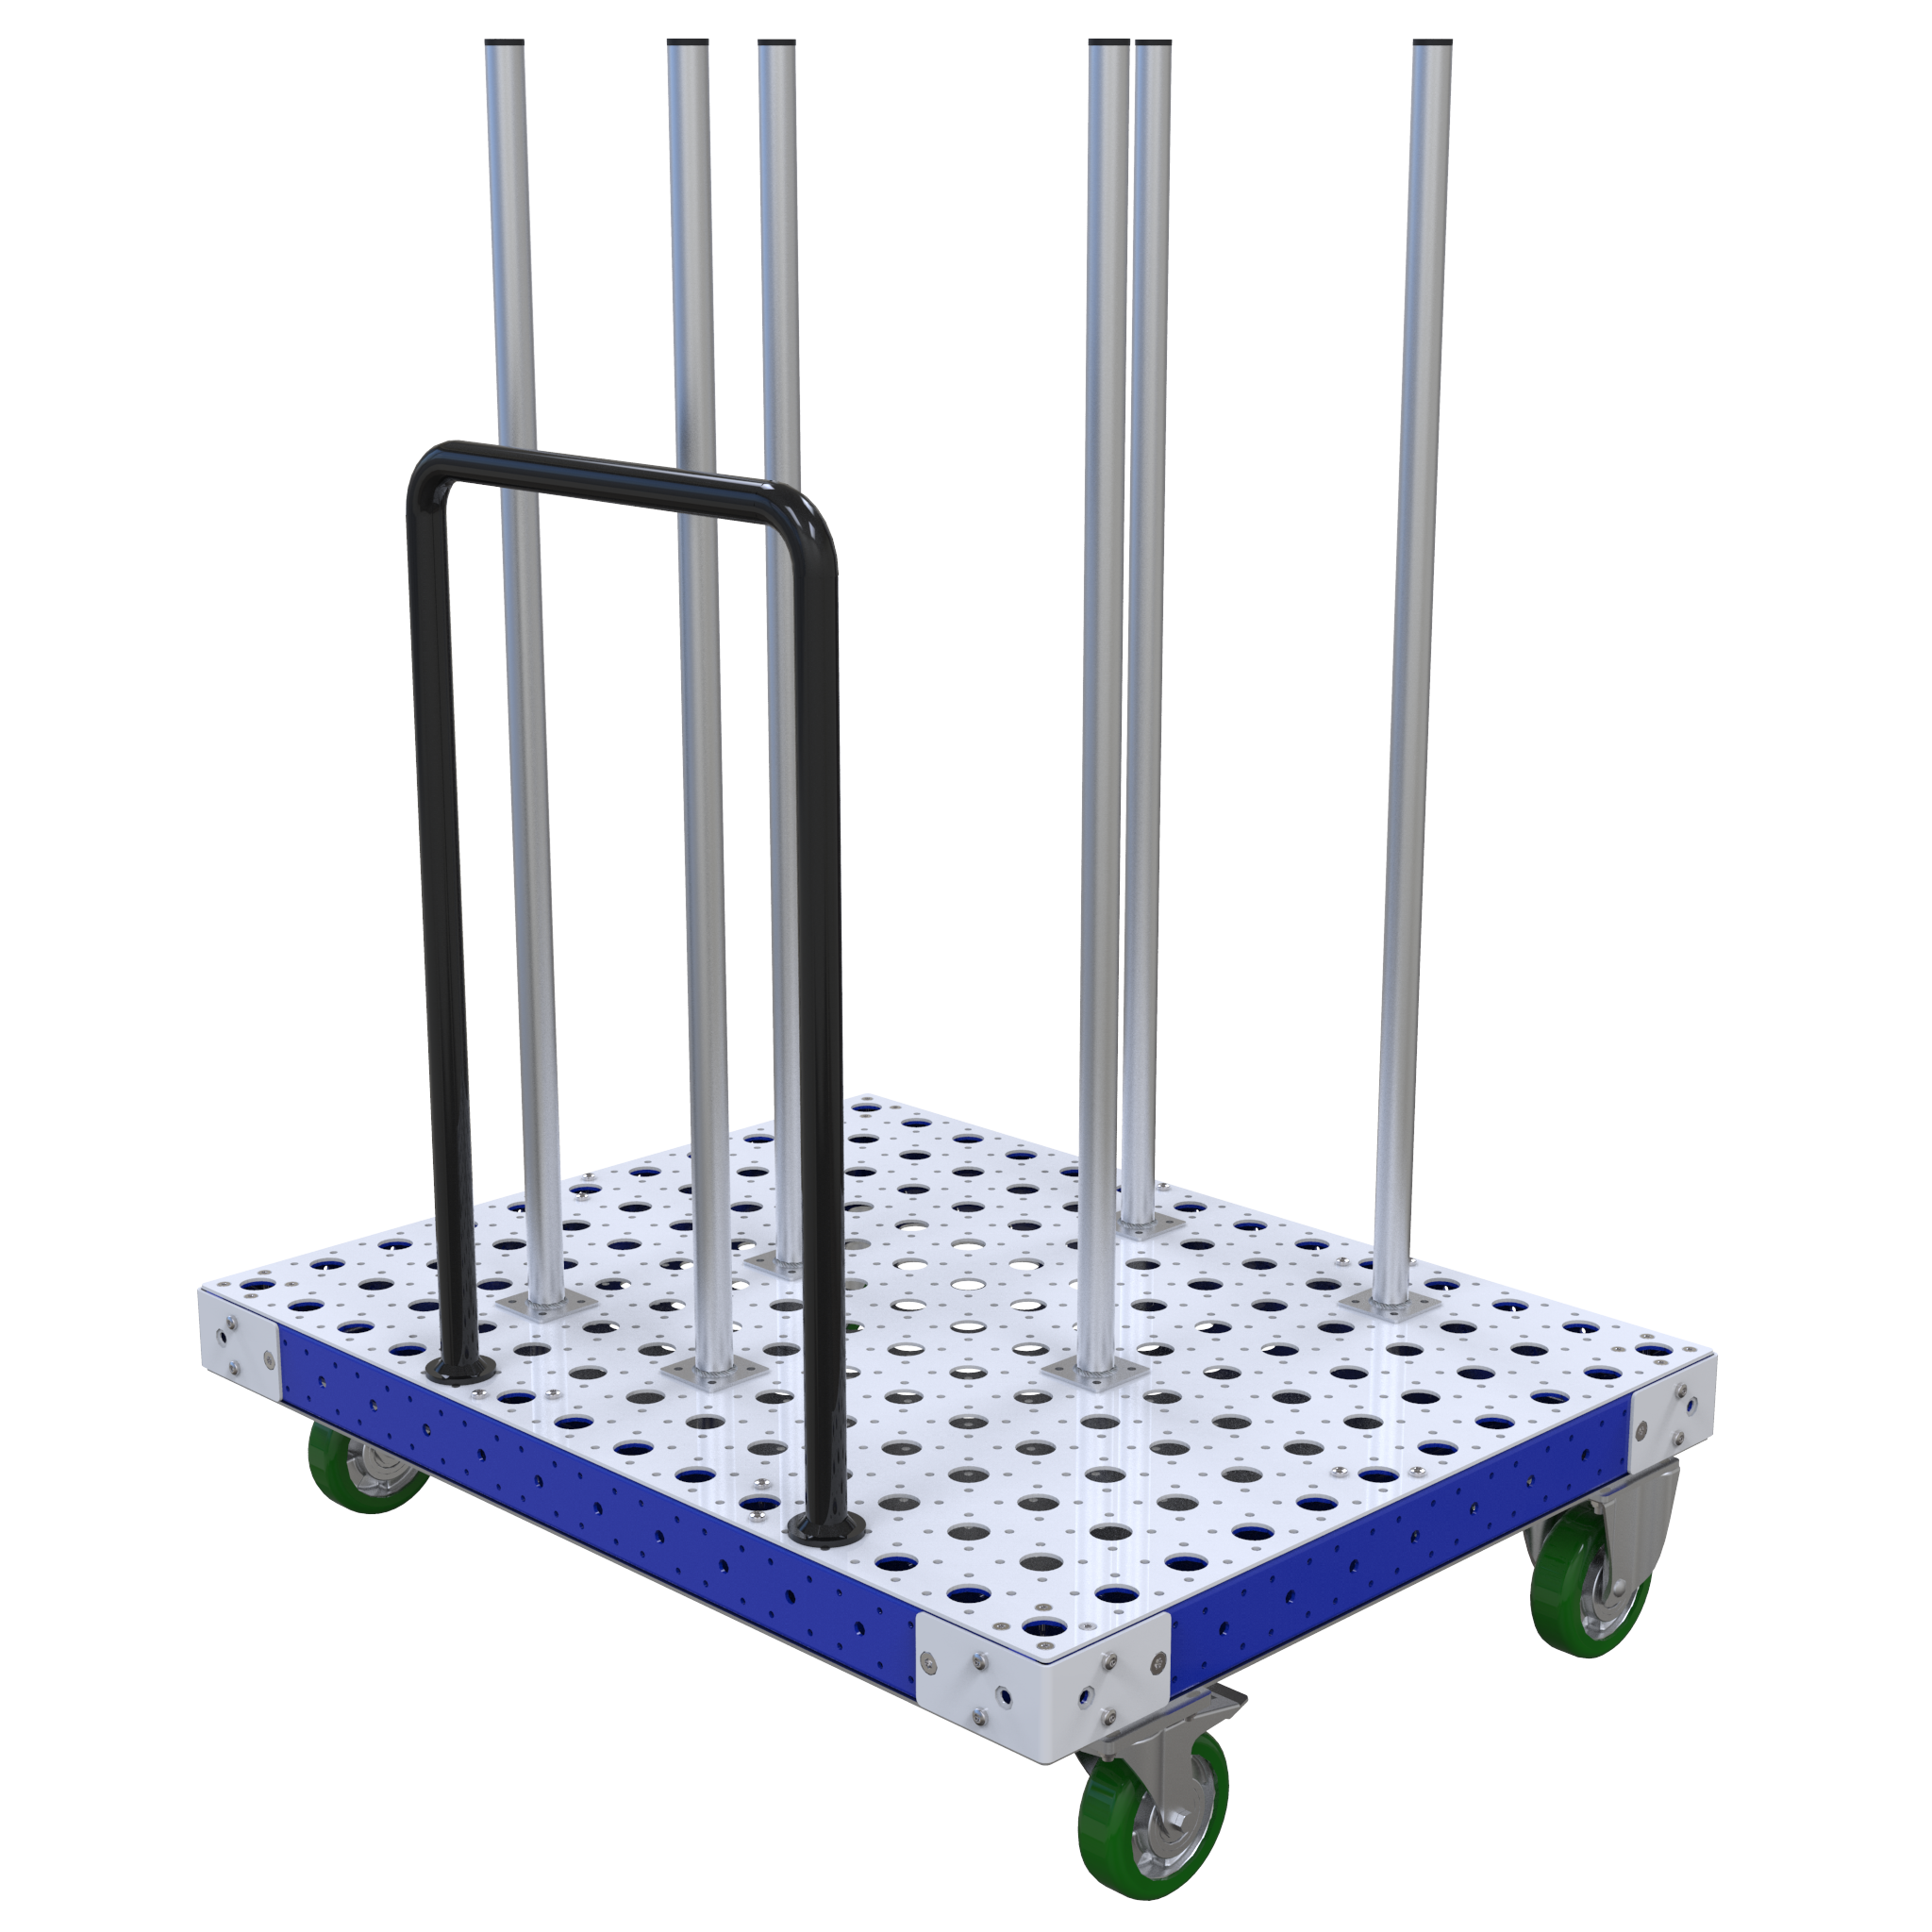 The cart is designed to stack different-sized circular components on the tubes.